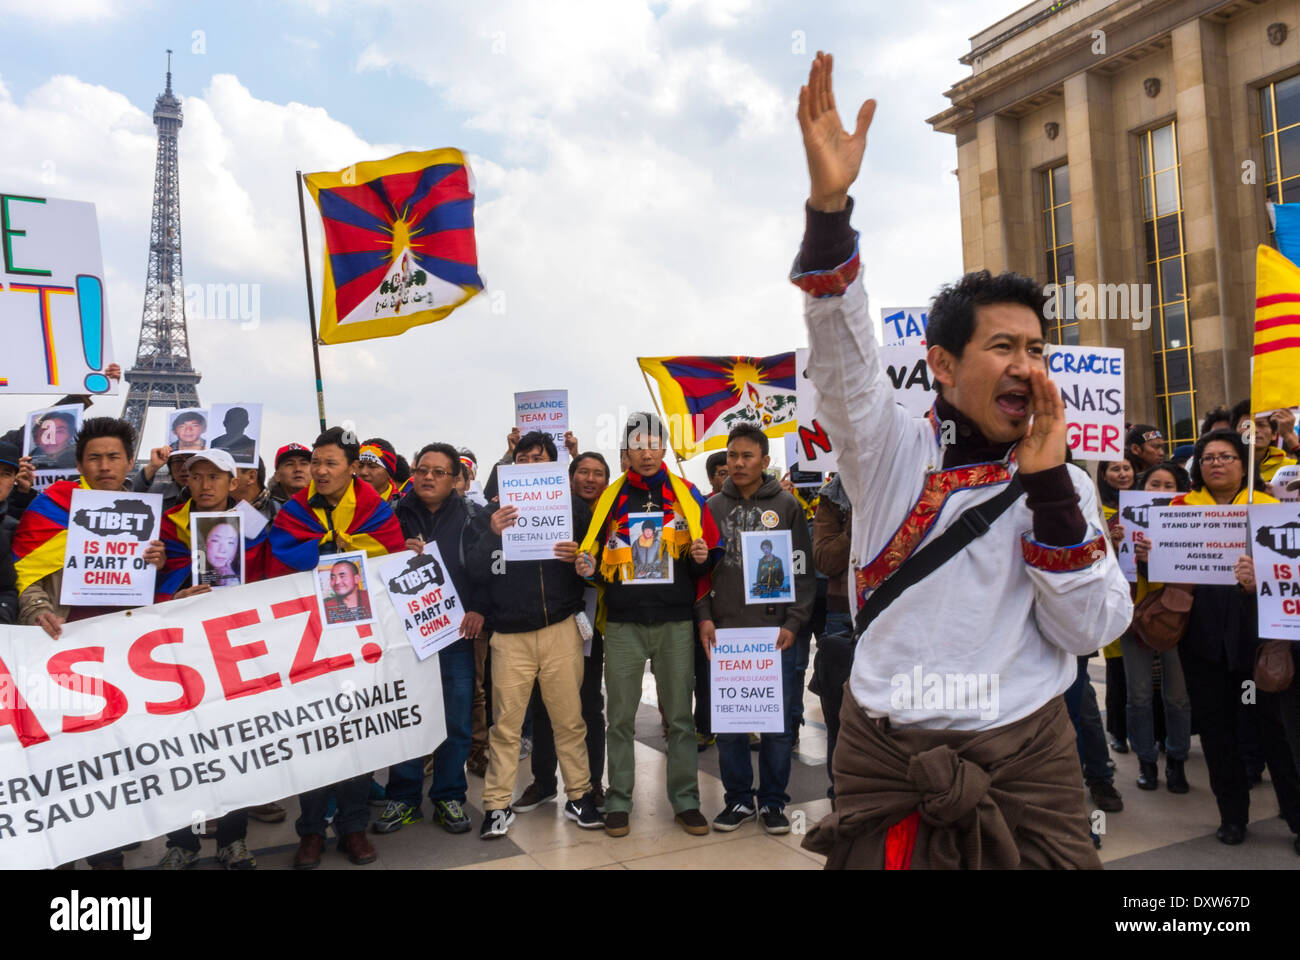 The Tibetan, Taiwanese Ethnic Communities of France, and Friends called for French citizens to mobilize during the Stock Photo